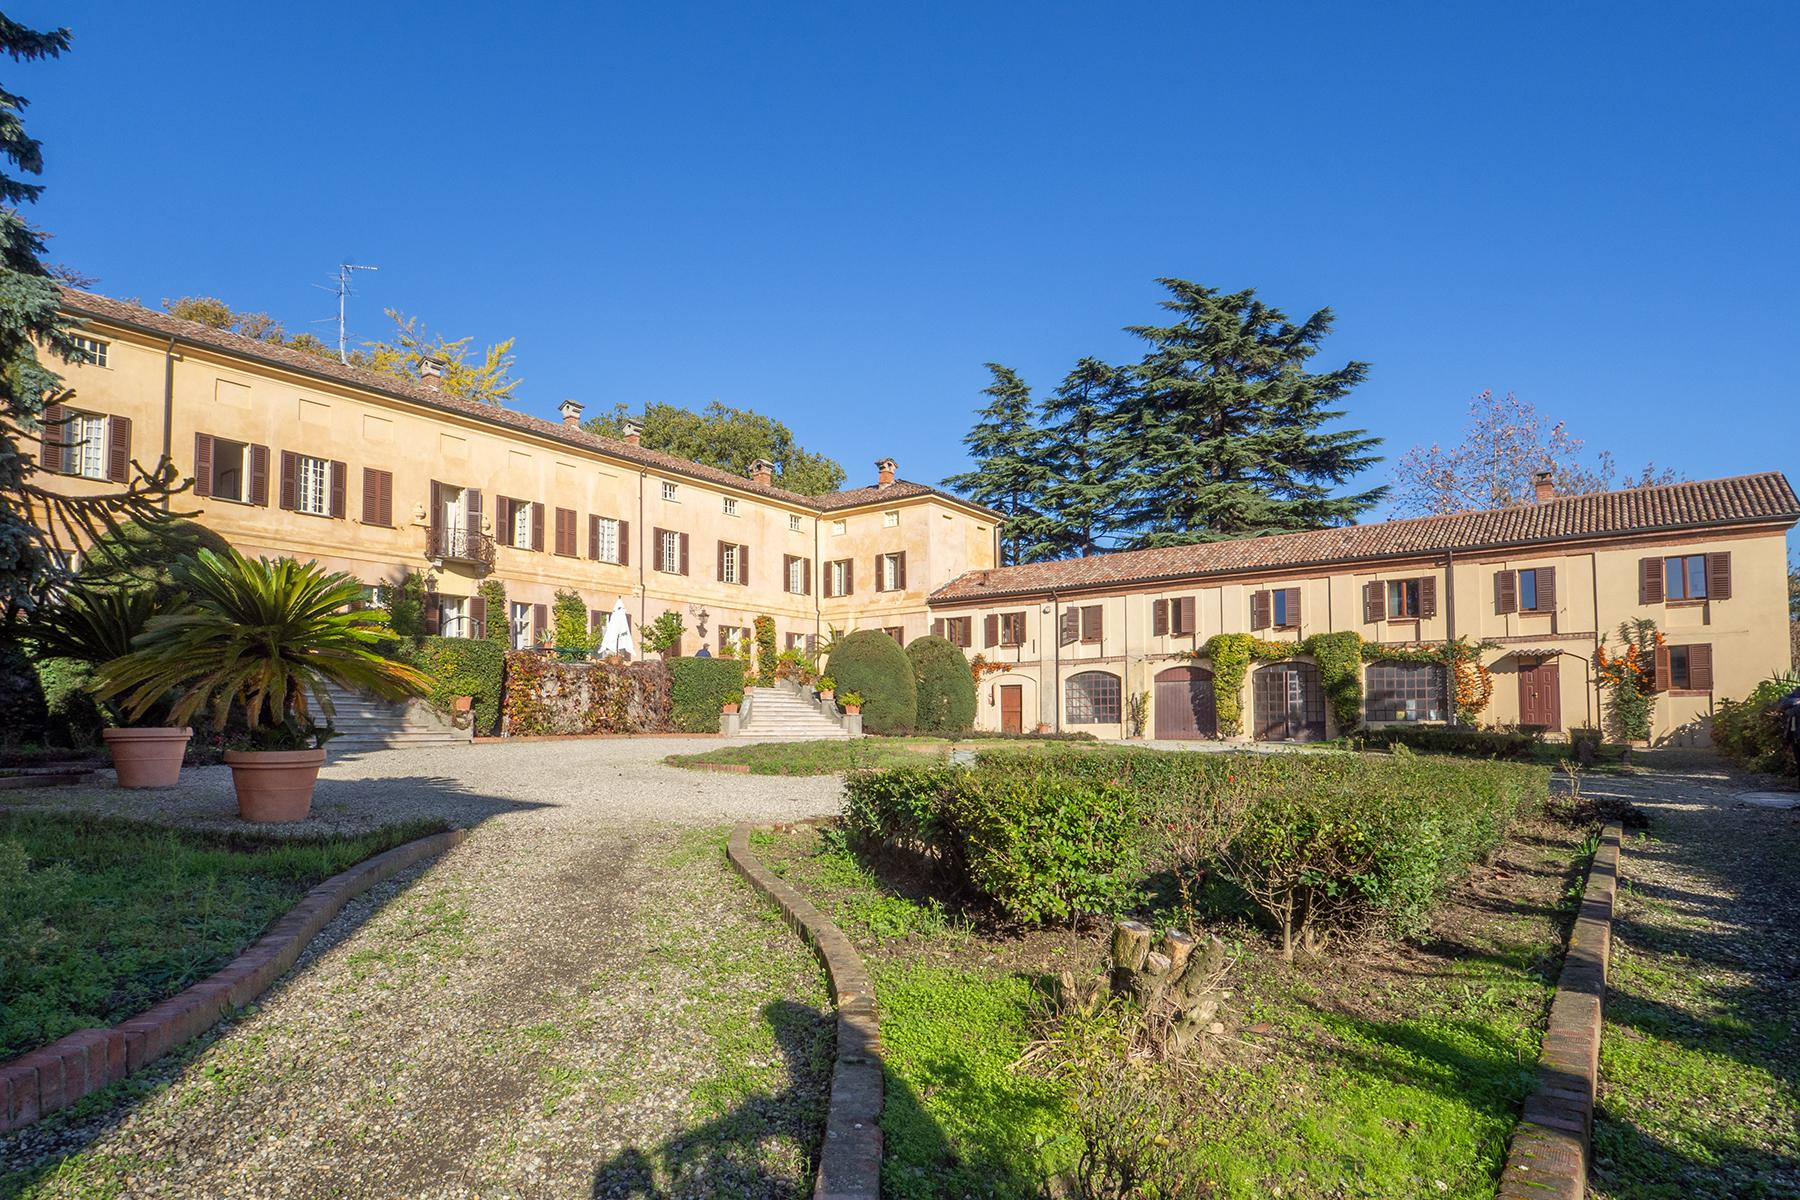 Prestigious historical manor nestled in the Monferrato countryside - 4